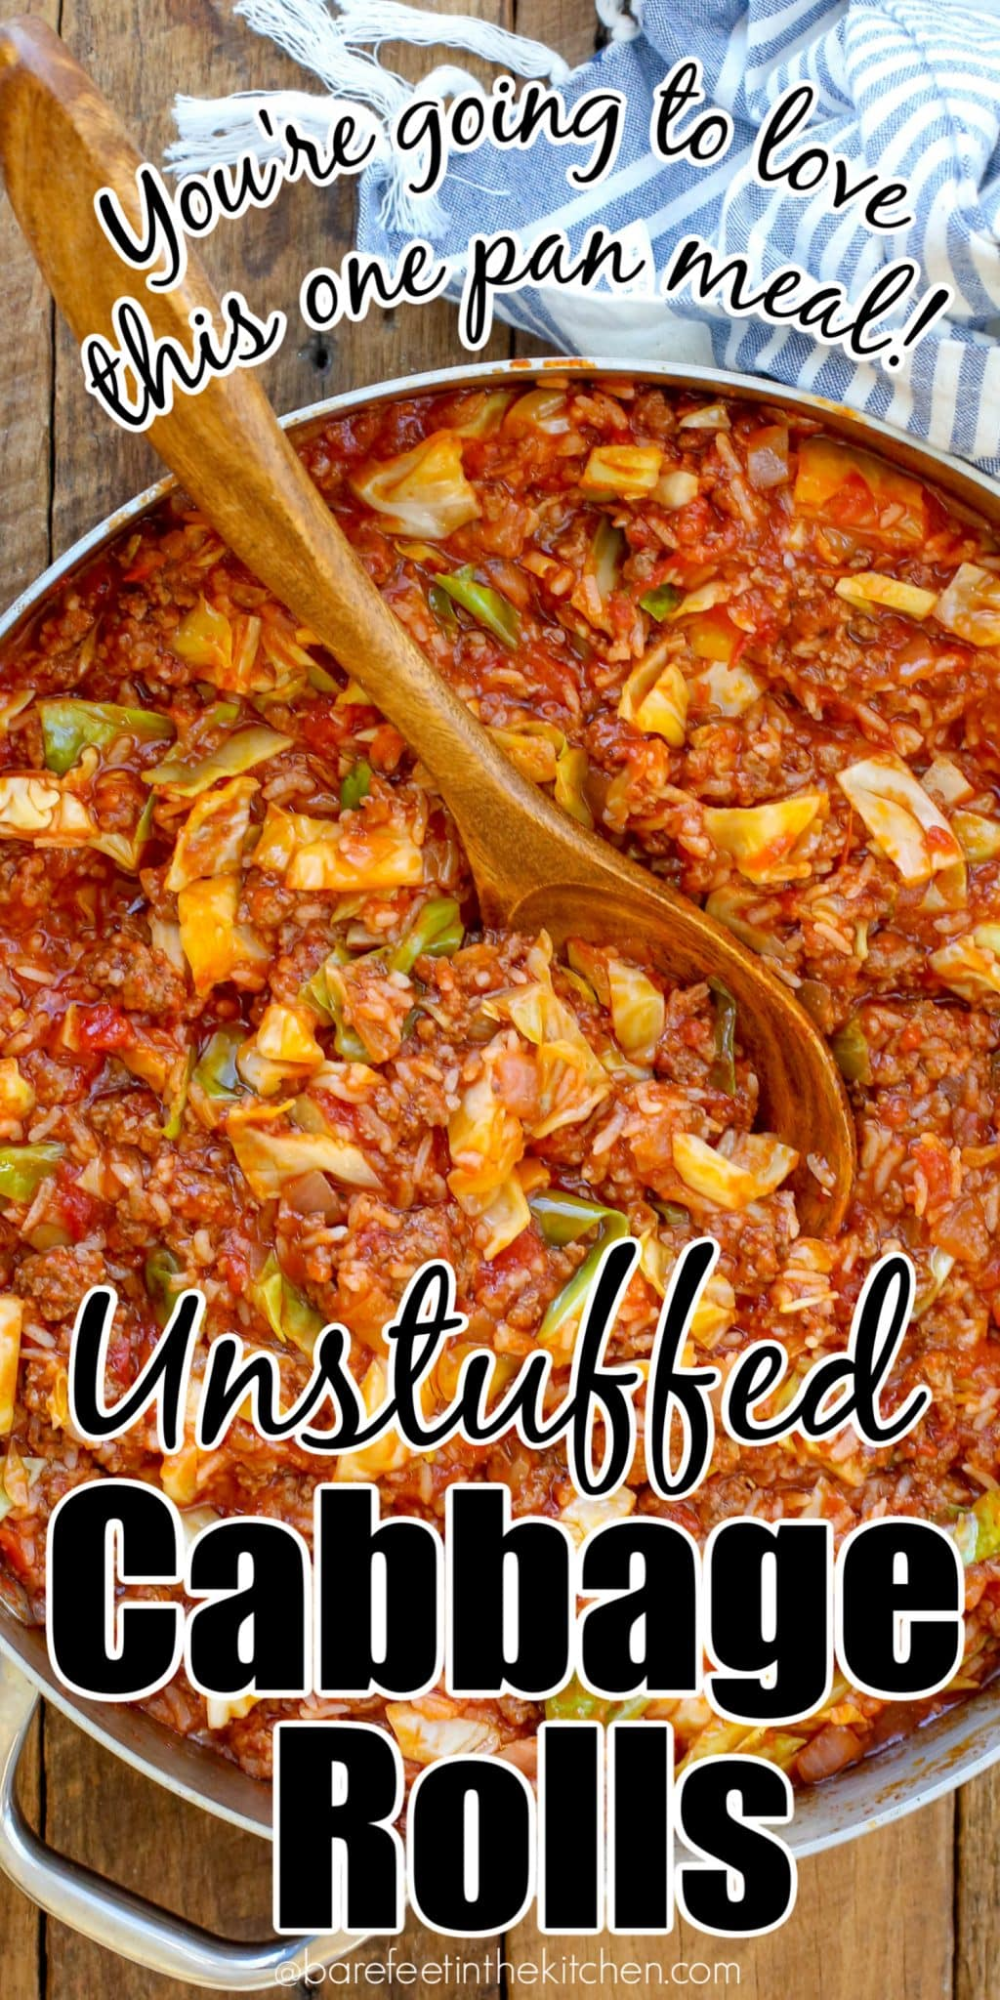 Unstuffed Cabbage Rolls In 2020 Unstuffed Cabbage Rolls Cabbage Soup Recipes Cabbage Recipes